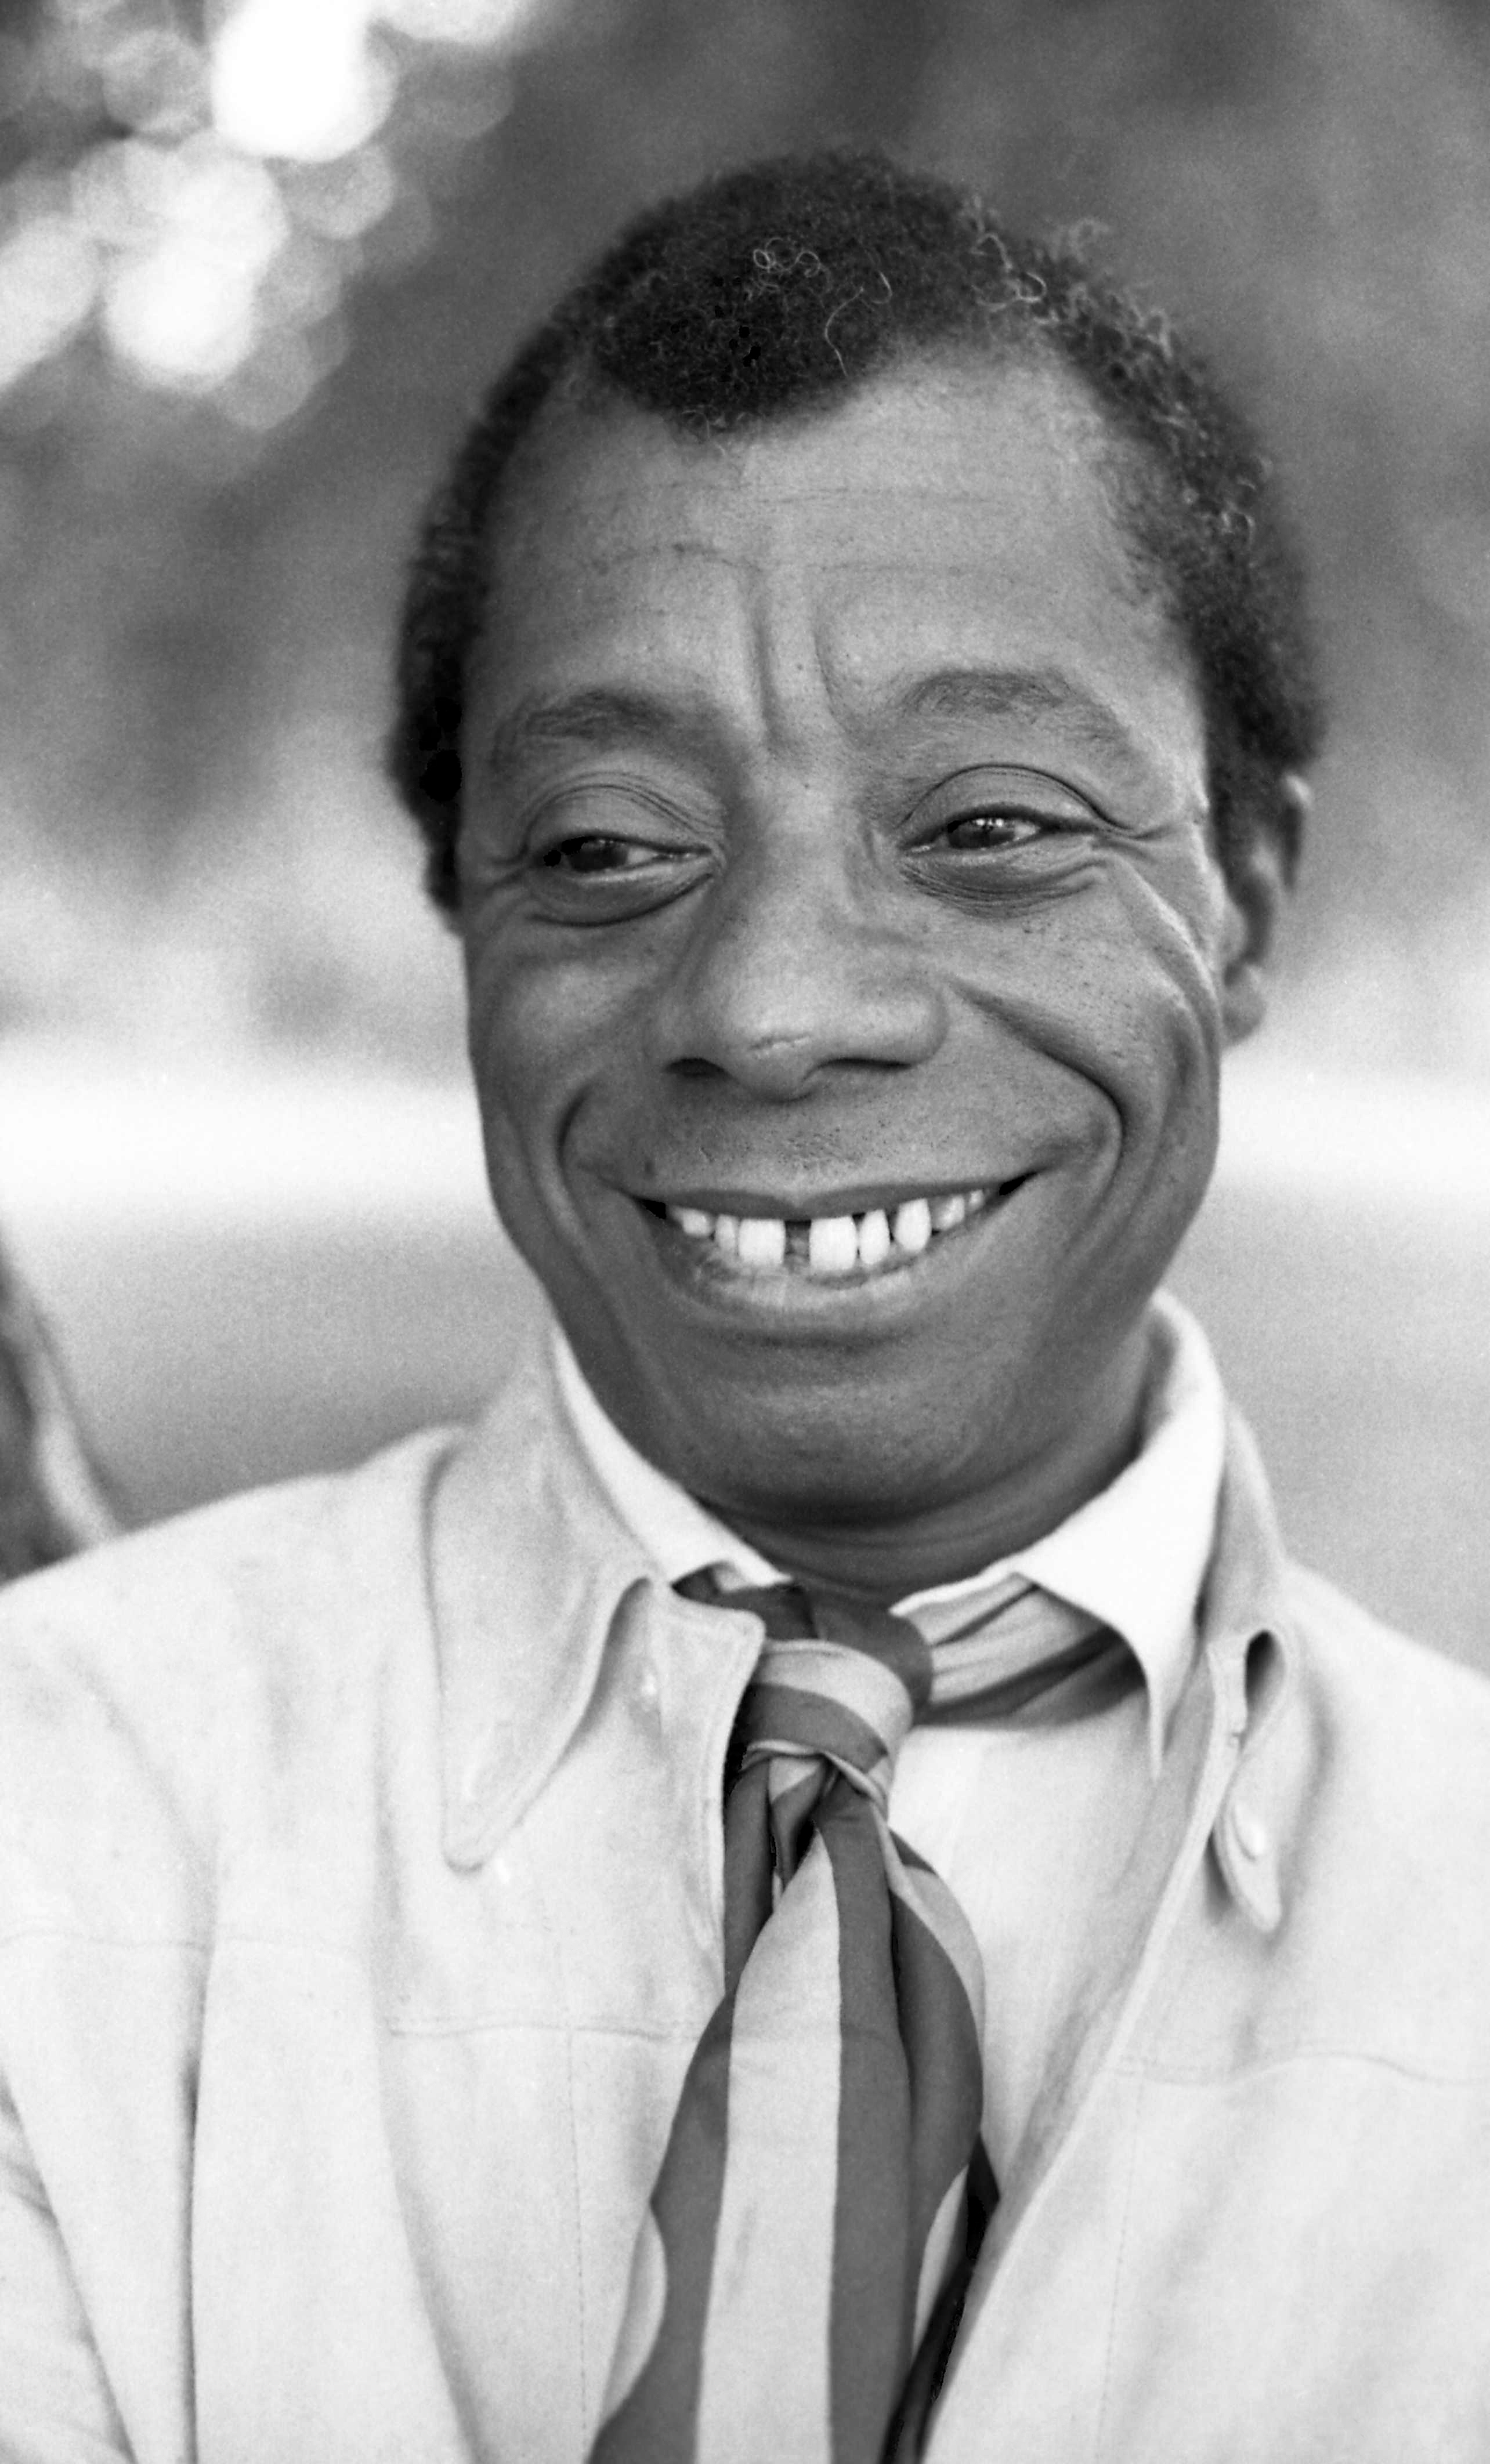 james baldwin essay on black english In james baldwin's essay, if black english isn't a language, then tell me, what is, he introduces the idea that black english is undefined on account of its role.